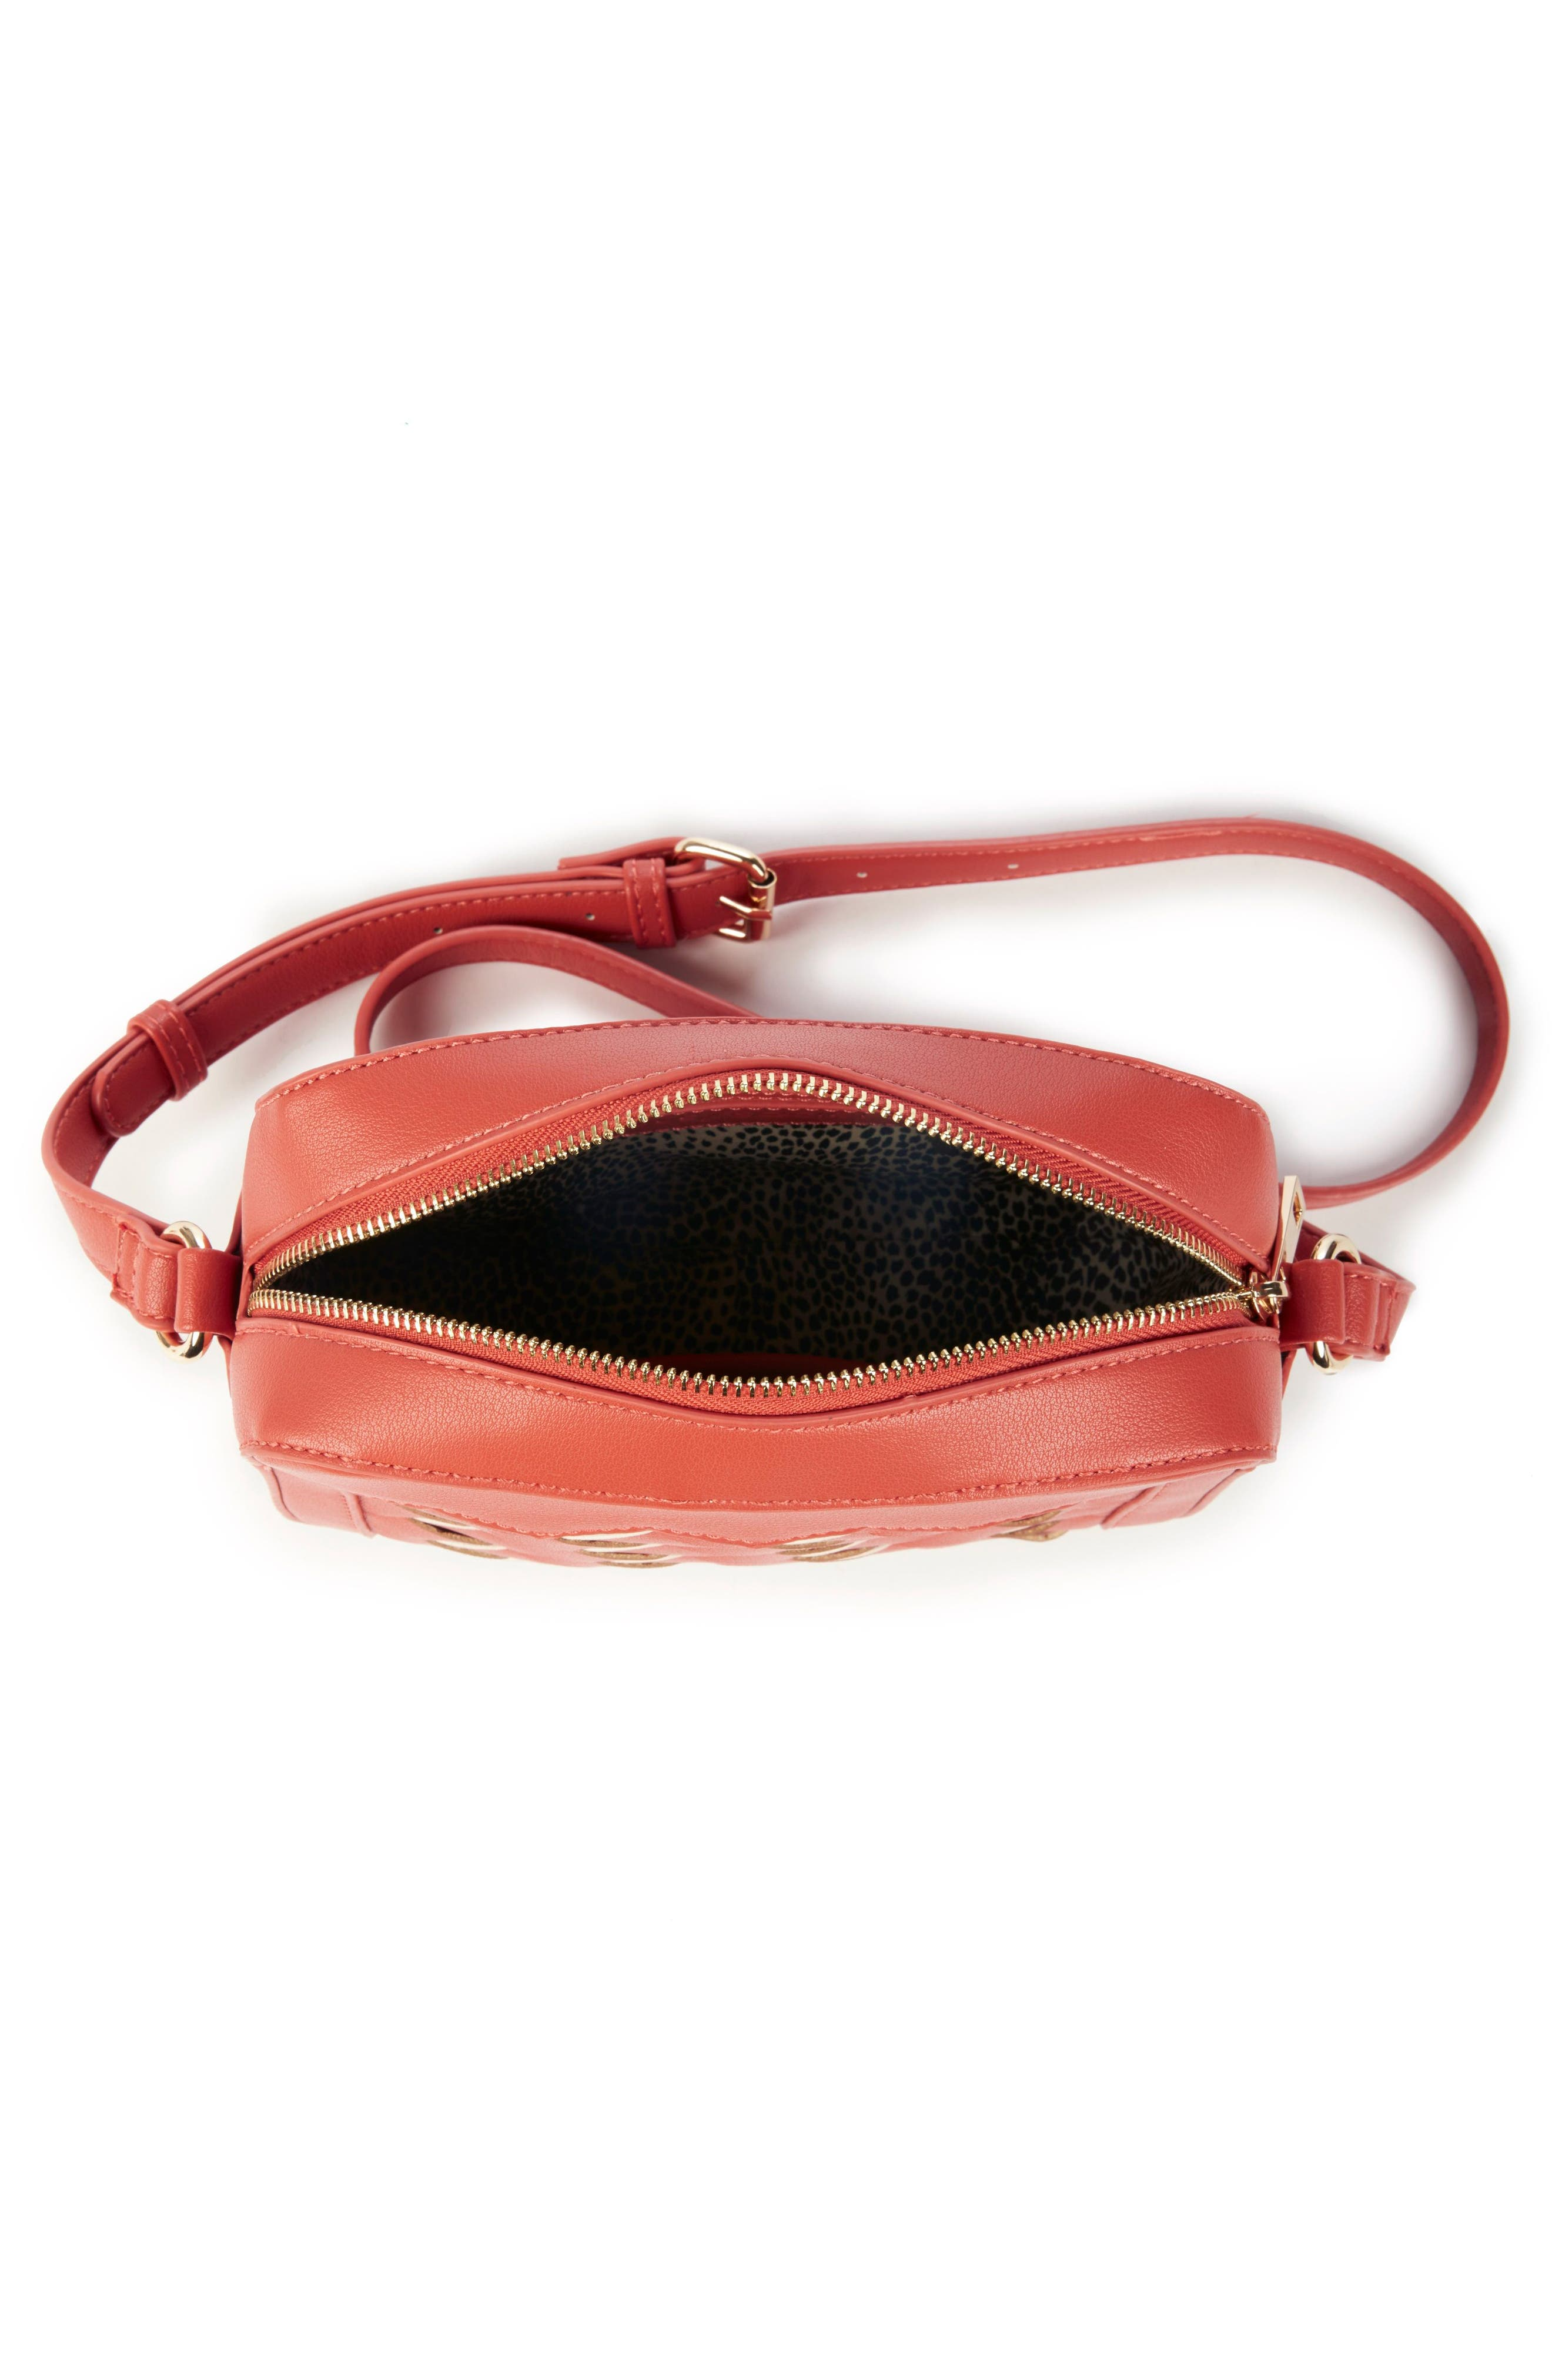 Hand Woven Faux Leather Crossbody Bag,                             Alternate thumbnail 3, color,                             Coral